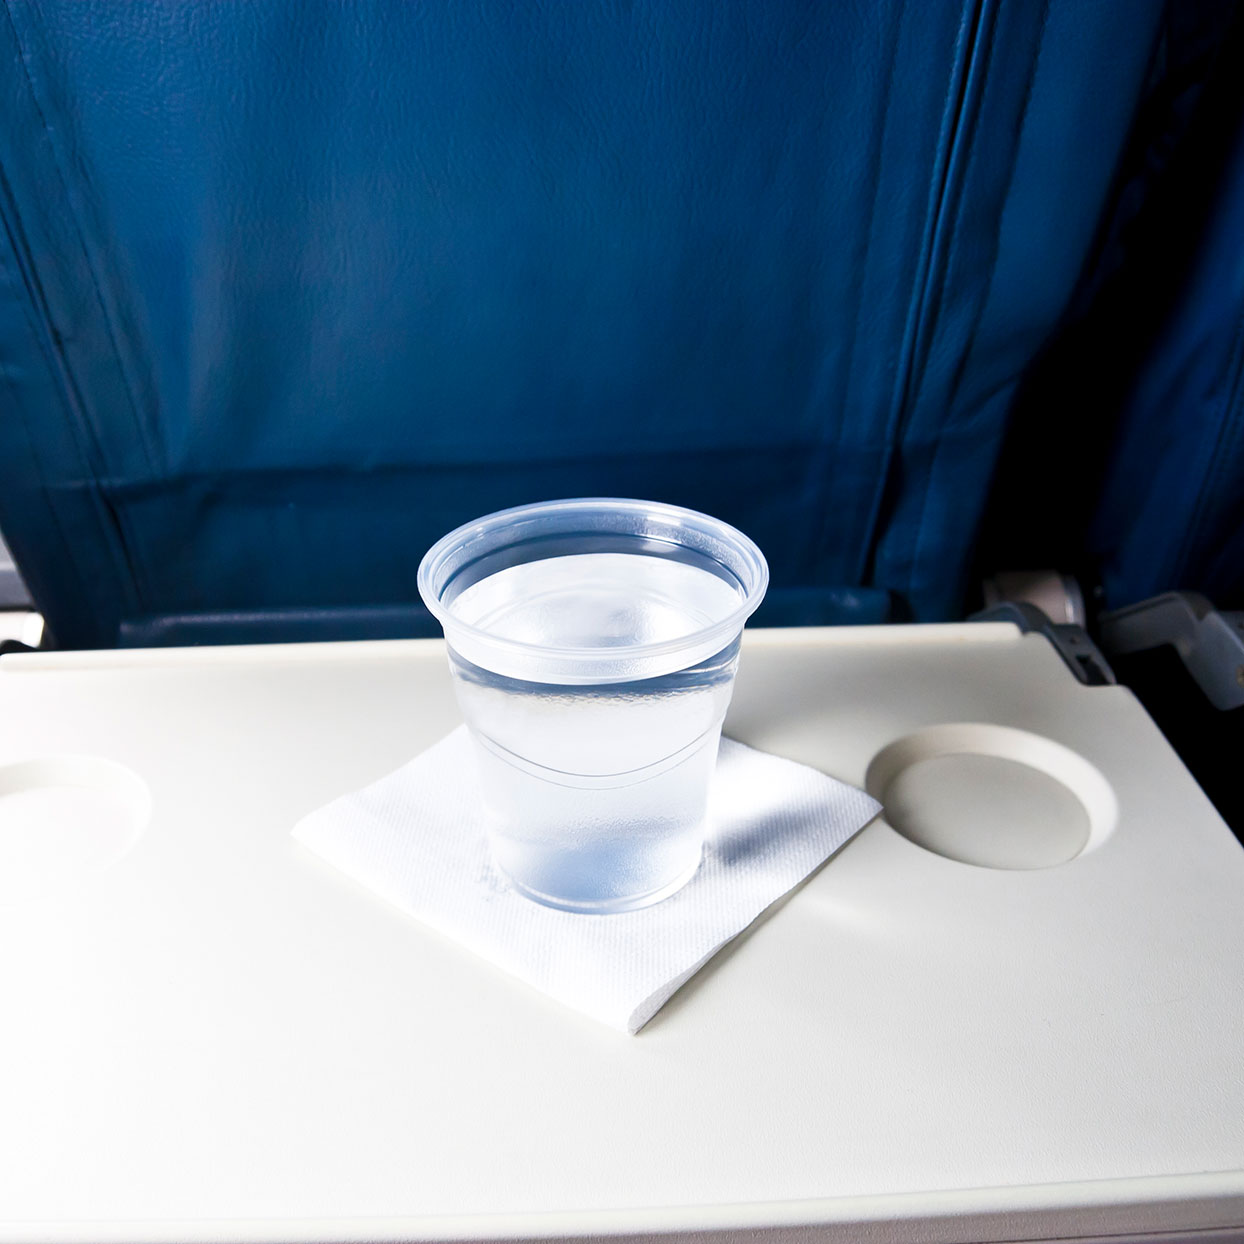 plastic cup of water on an airplane tray